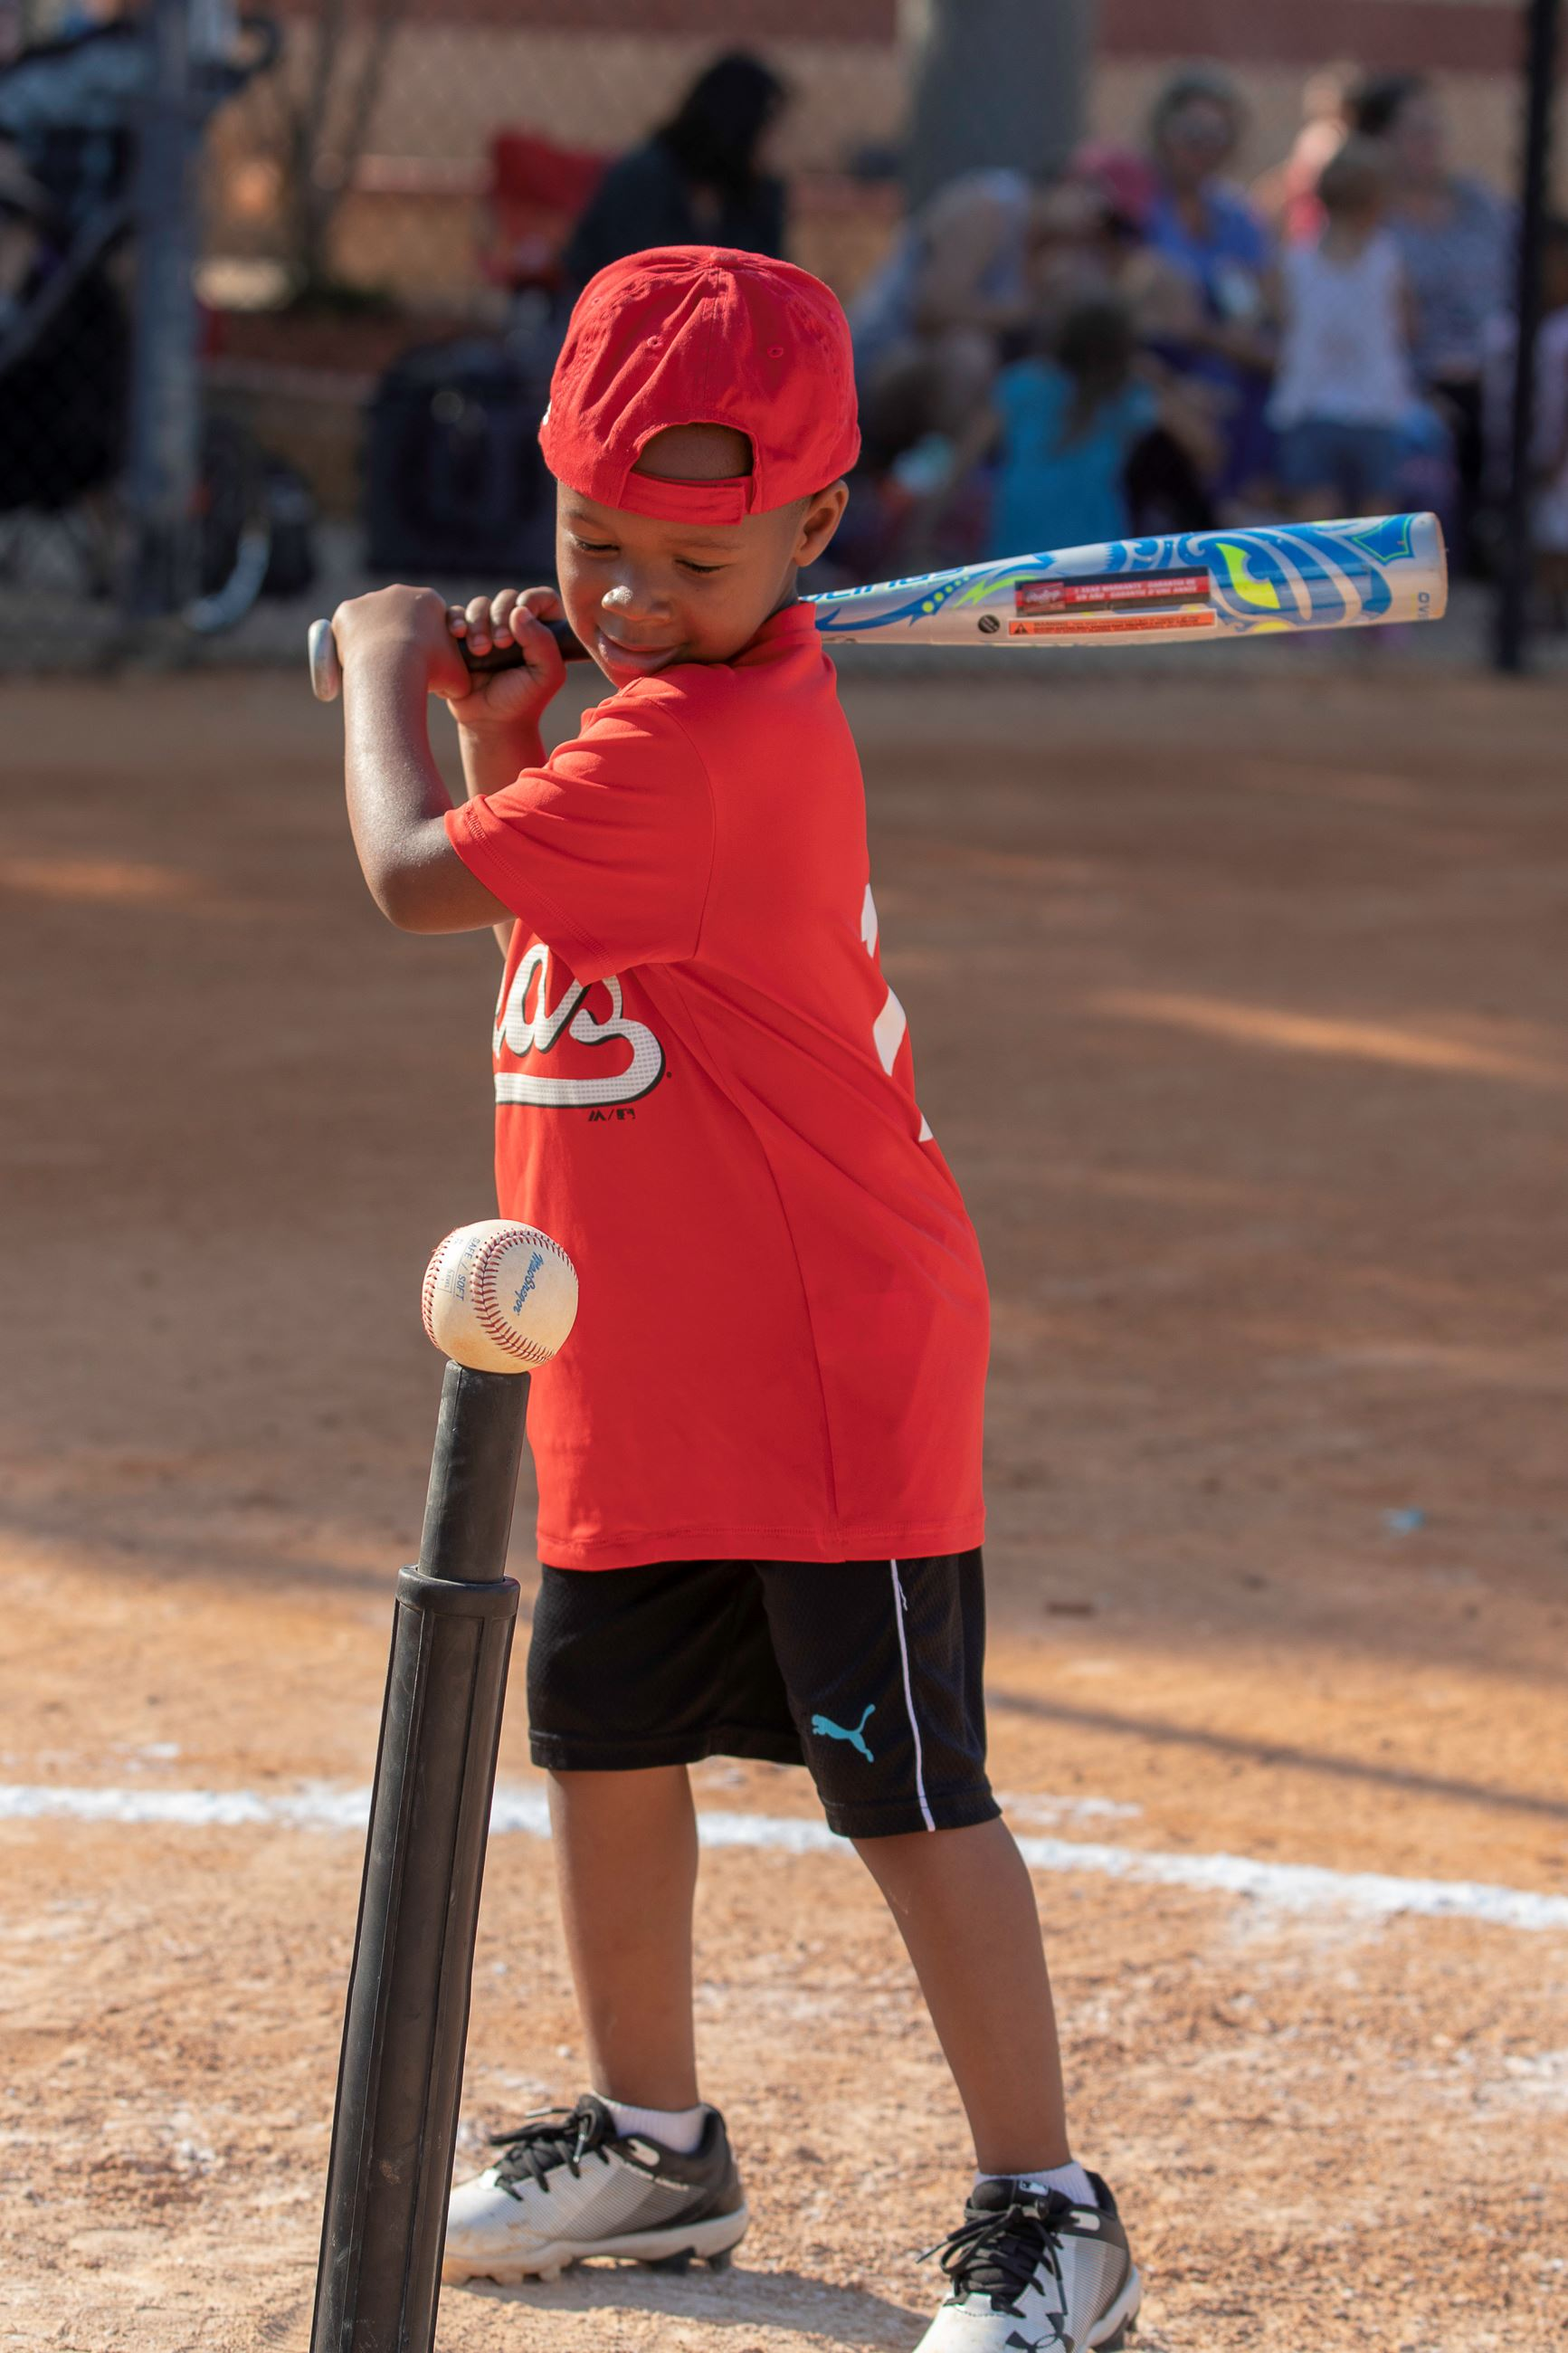 Image of little boy batting at tee ball.